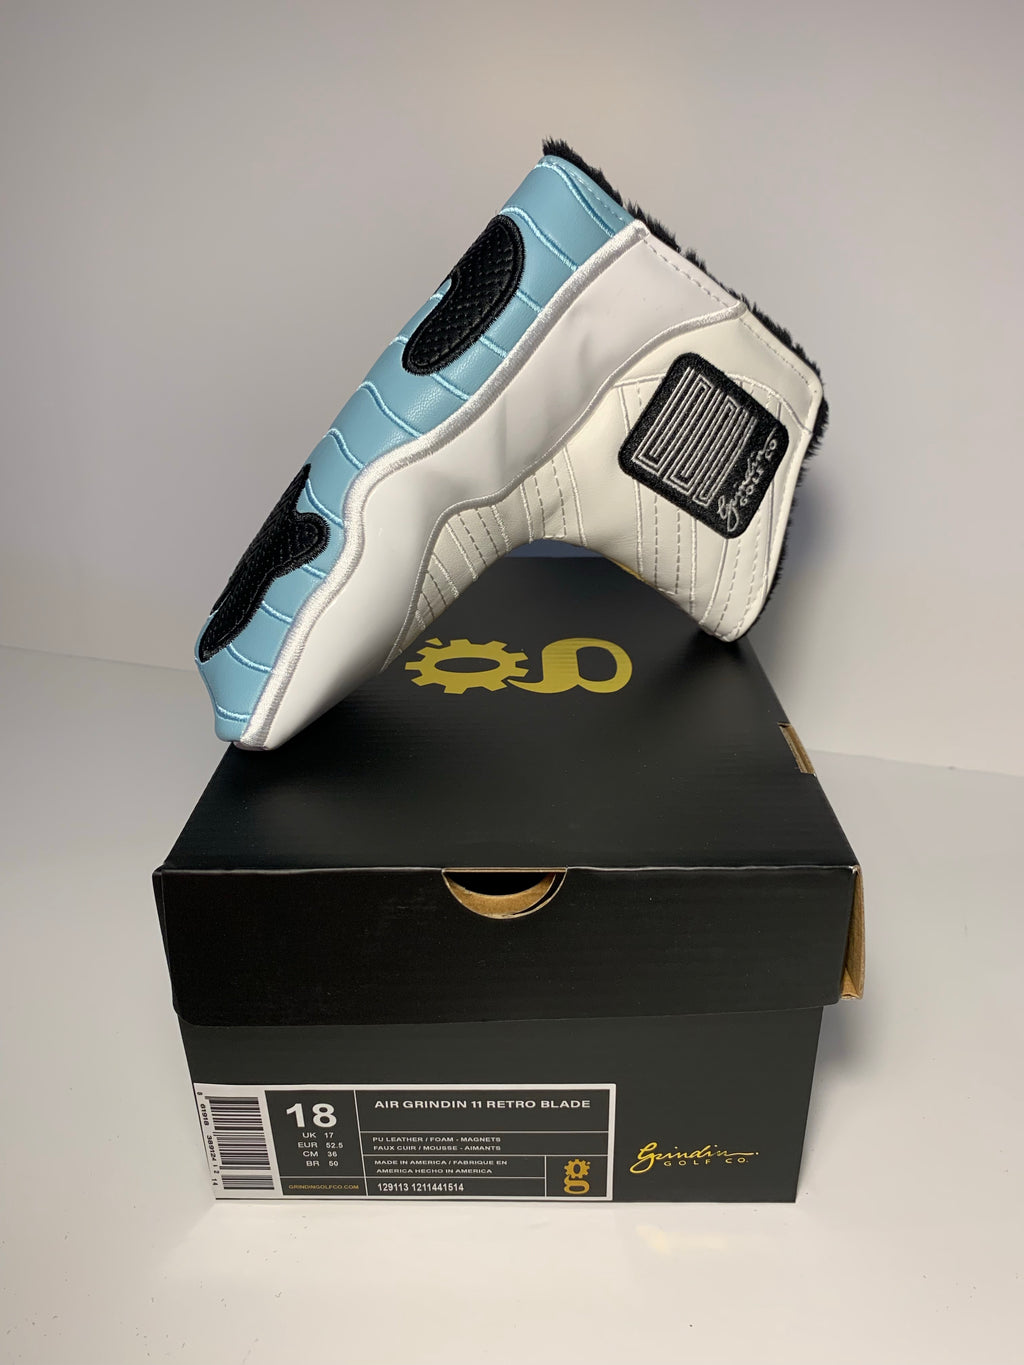 MJ Patent Leather XI Blade Putter Cover - Carolina Blue